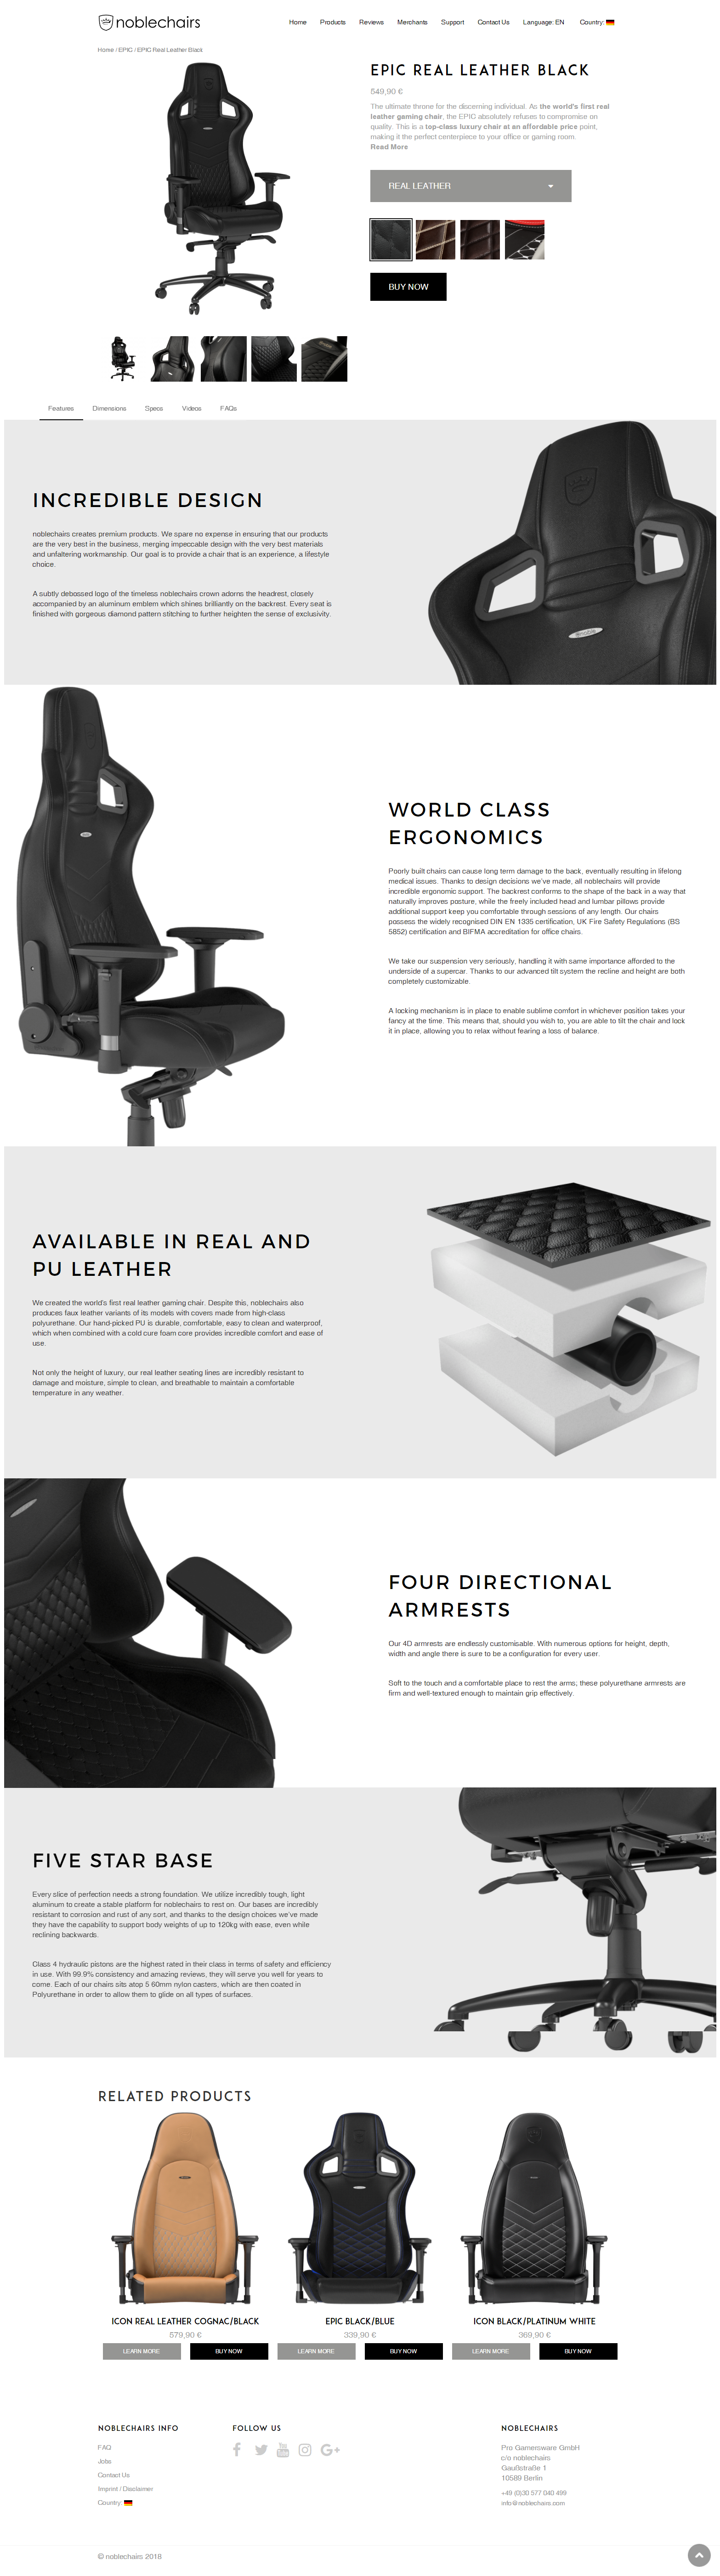 screencapture-noblechairs-product-epic-real-leather-black-2018-04-18-11_47_25